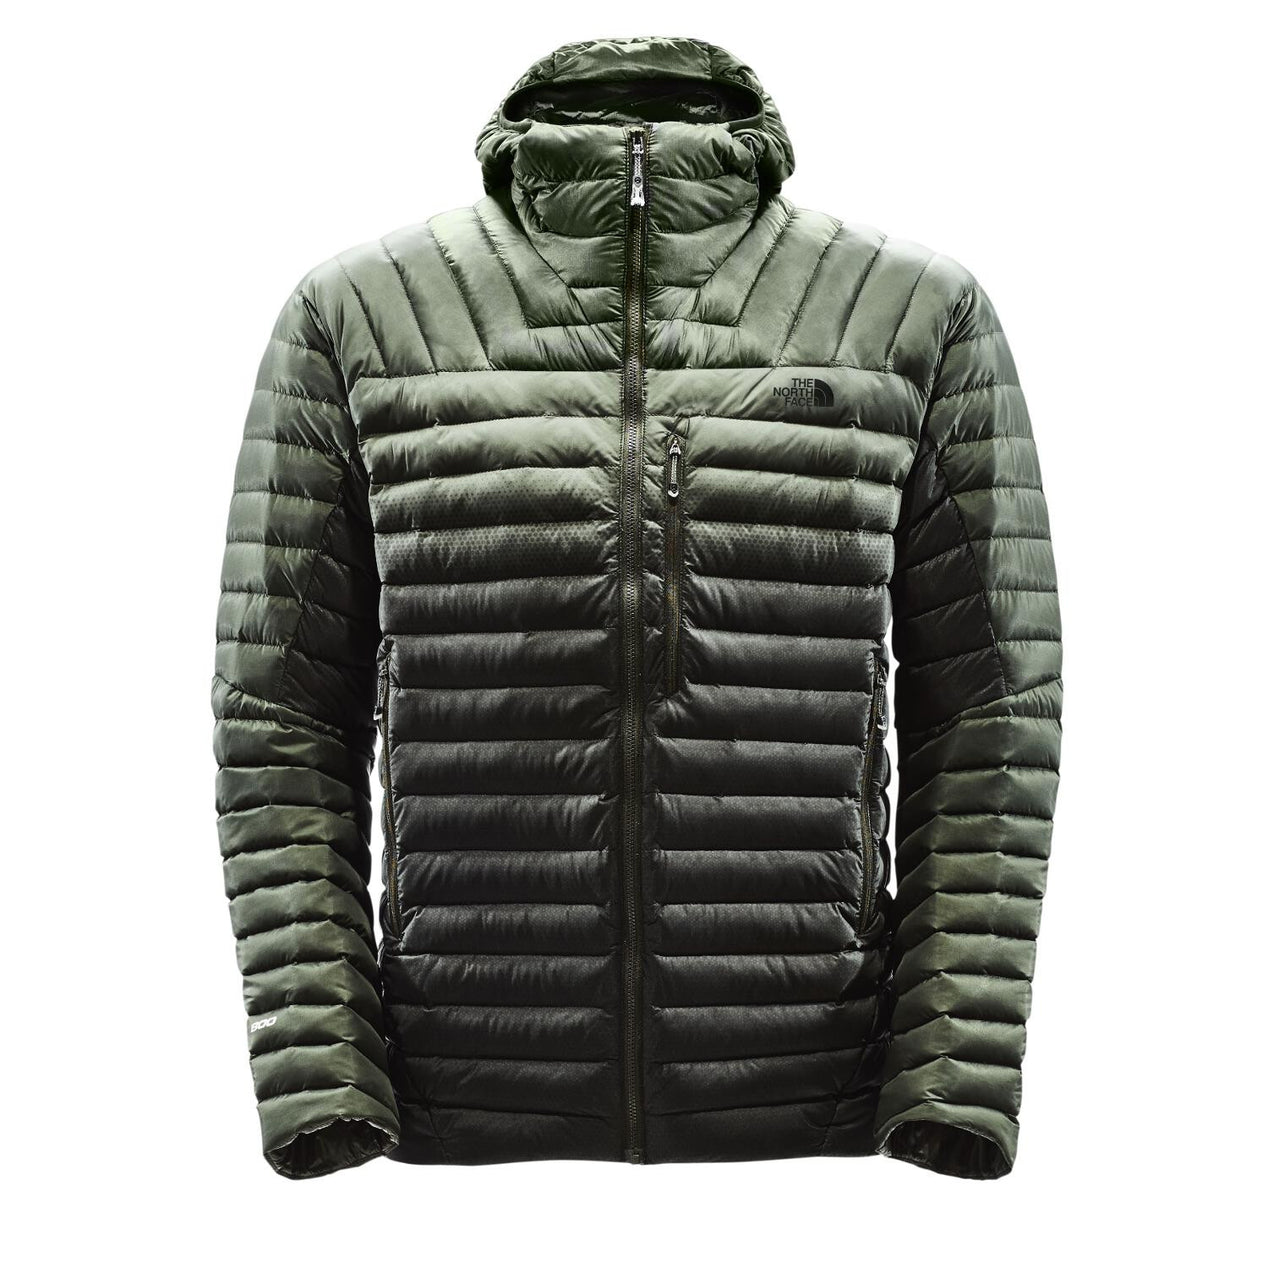 13fddd401 The North Face Men's Summit L3 Jacket